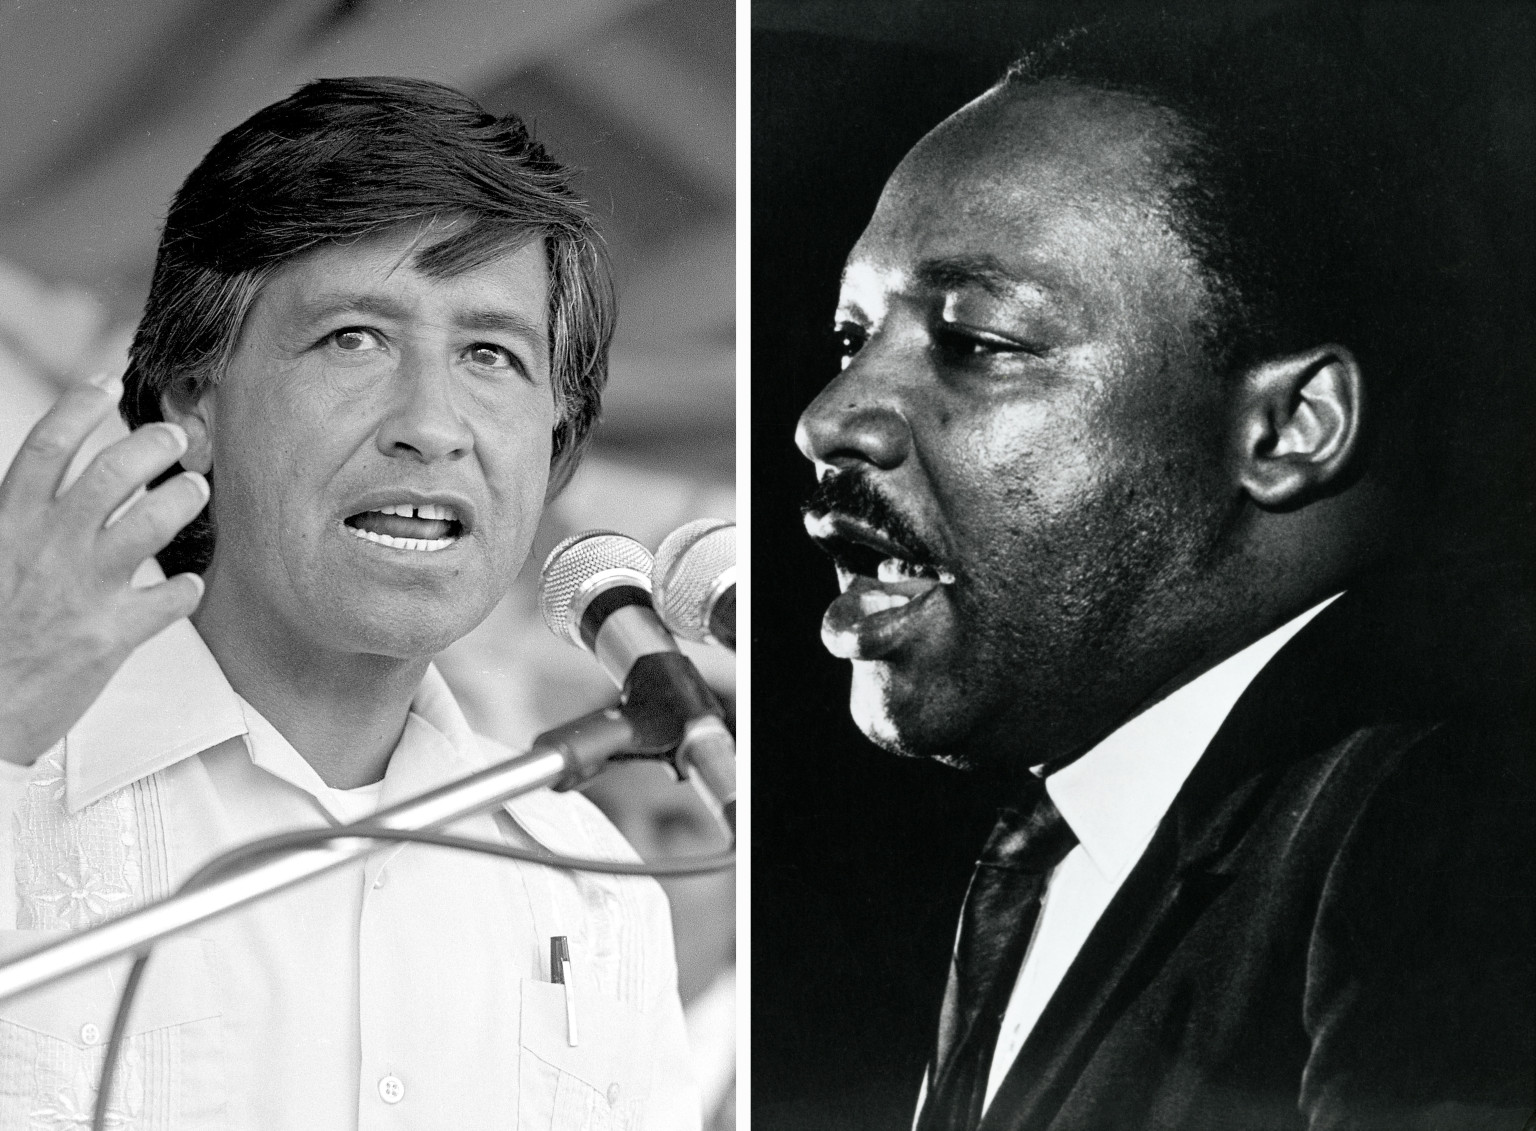 achievements of cesar chavez and martin luther king essay Compare and contrast the contributions and achievements of cesar chavez and martin luther king to the civil rights movement 1221 words - 5 pages although martin luther king and cesar chavez came from very different backgrounds, their success as leaders of the civil rights movement bears many similarities in its historic development.